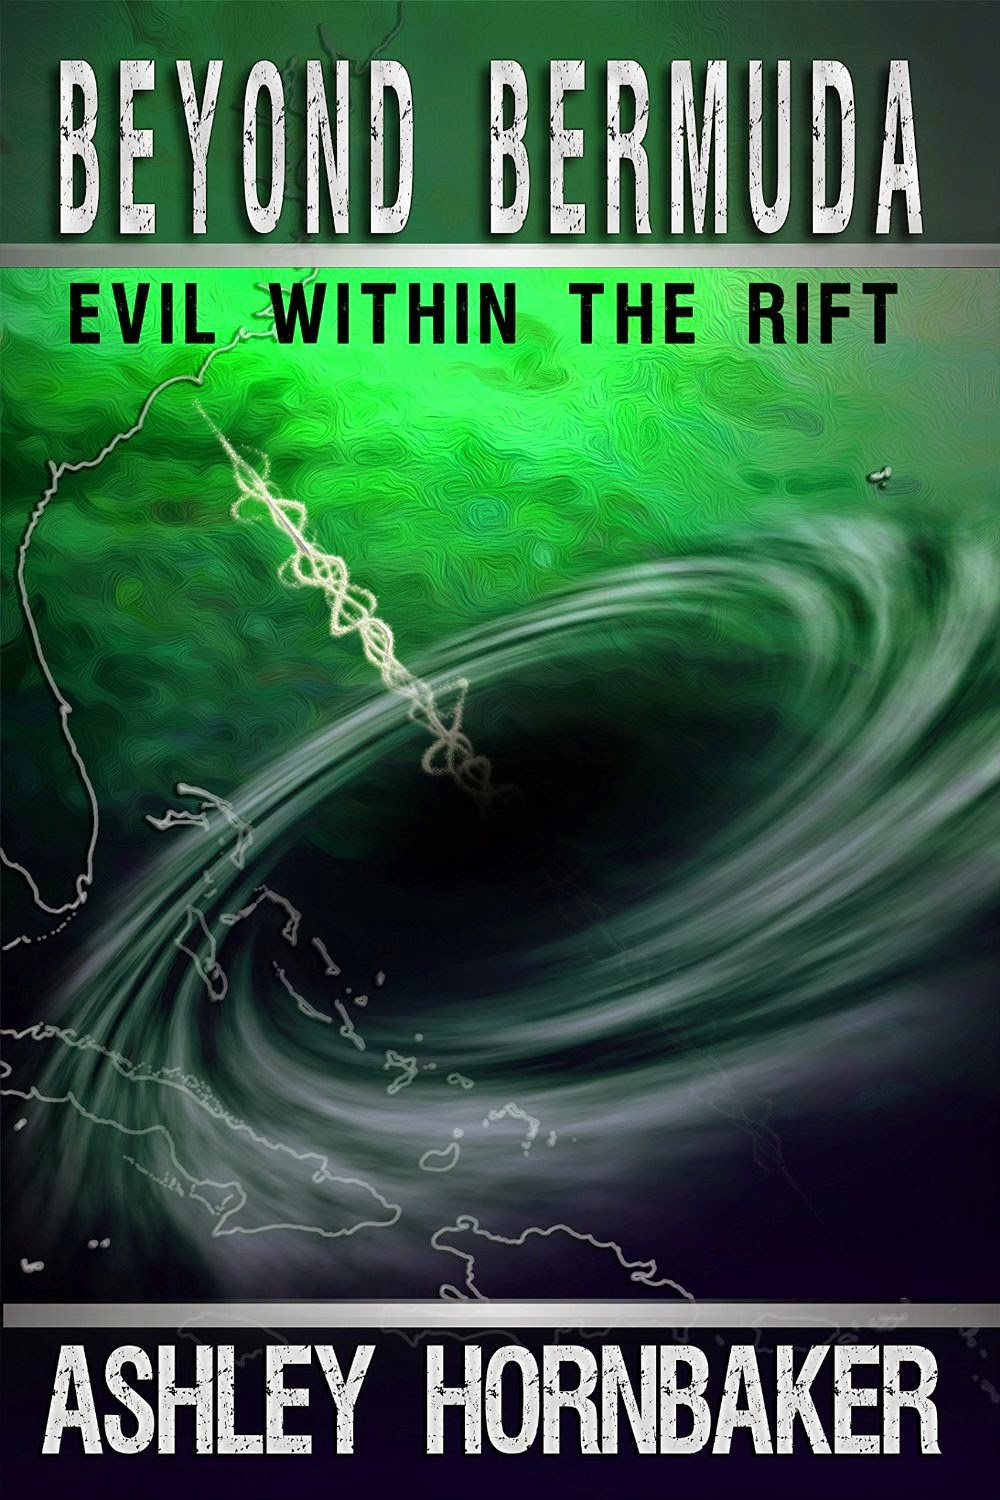 http://www.amazon.com/Beyond-Bermuda-Evil-Within-Rift-ebook/dp/B00CB1YKL6